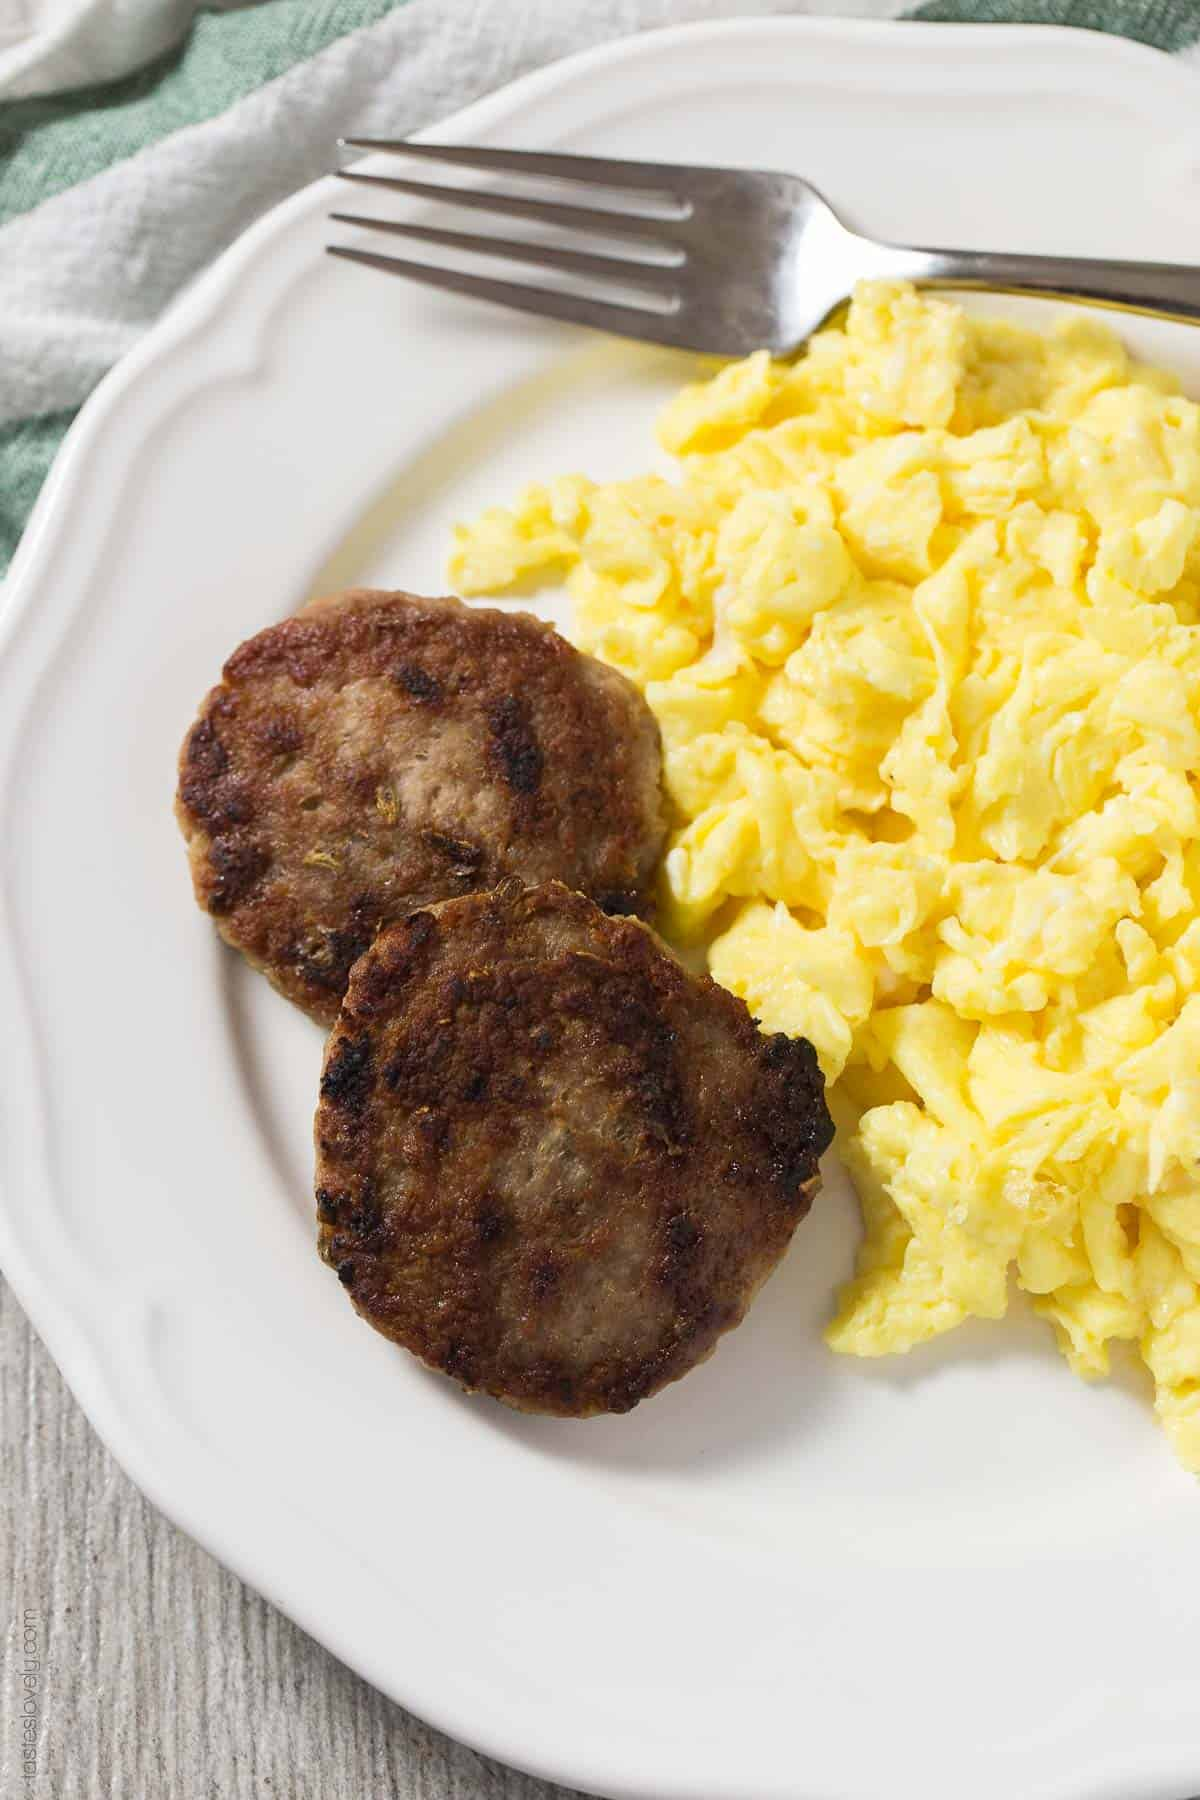 Homemade Paleo Breakfast Sausage Patties